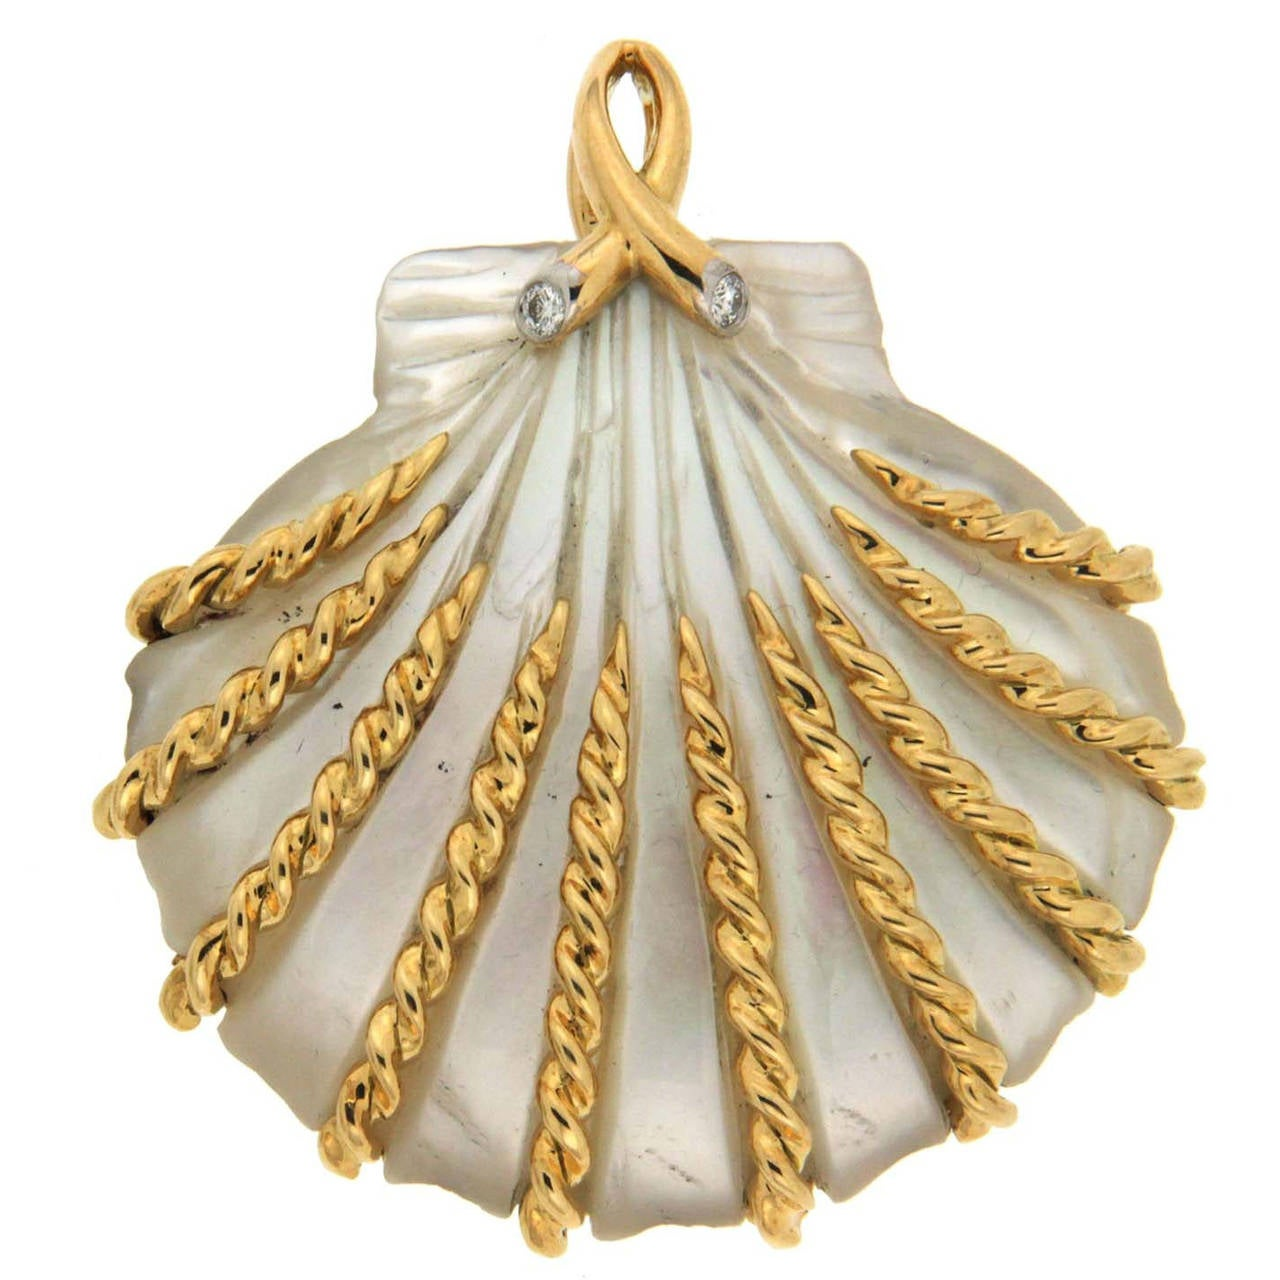 Hand-Carved Mother-of-Pearl Sea Shell Gold Pendant 1